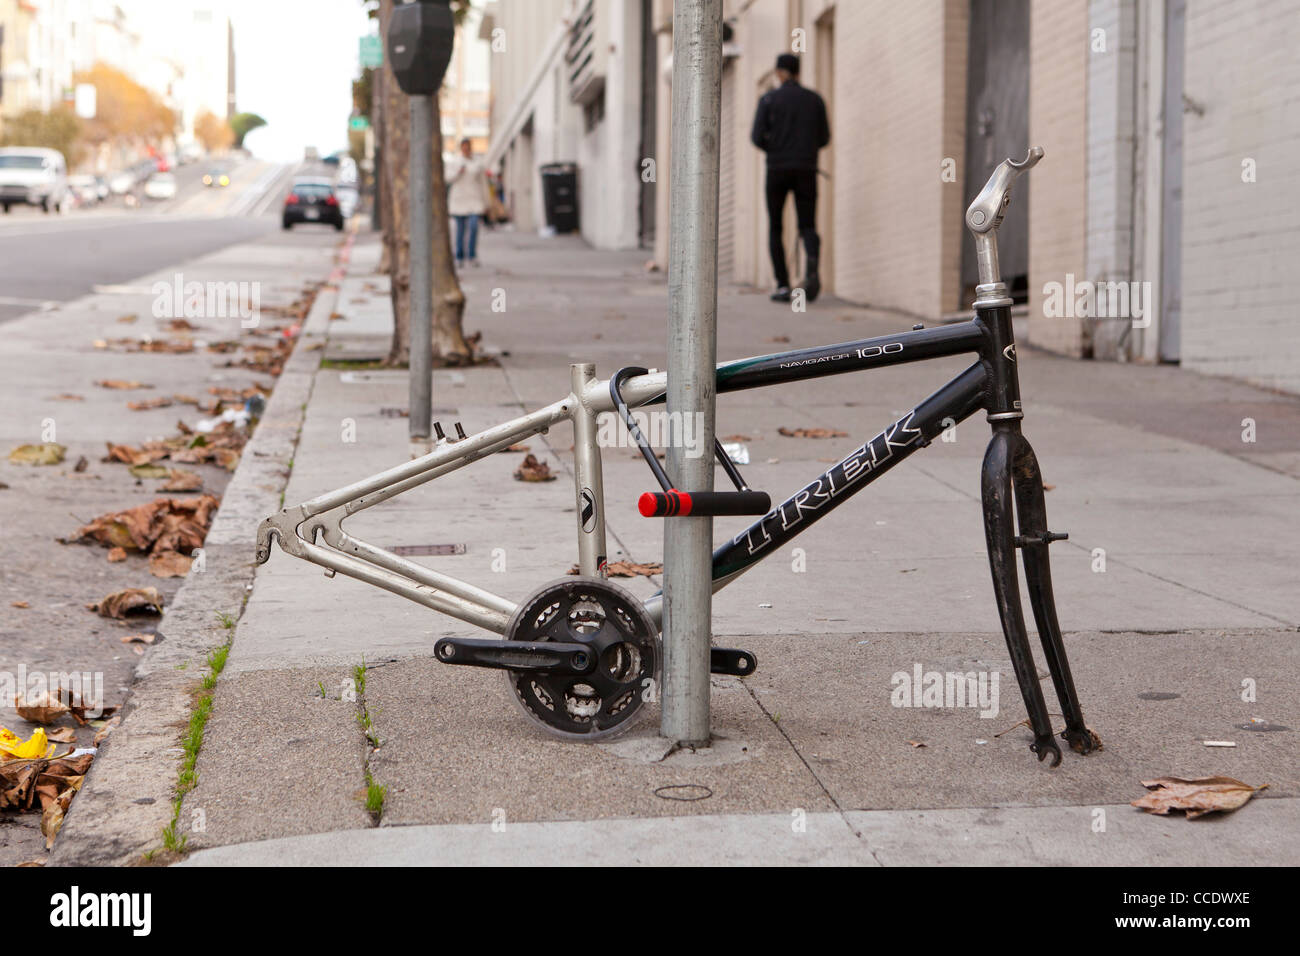 Vandalisé location sur trottoir (vandalisé bike frame) - USA Photo Stock